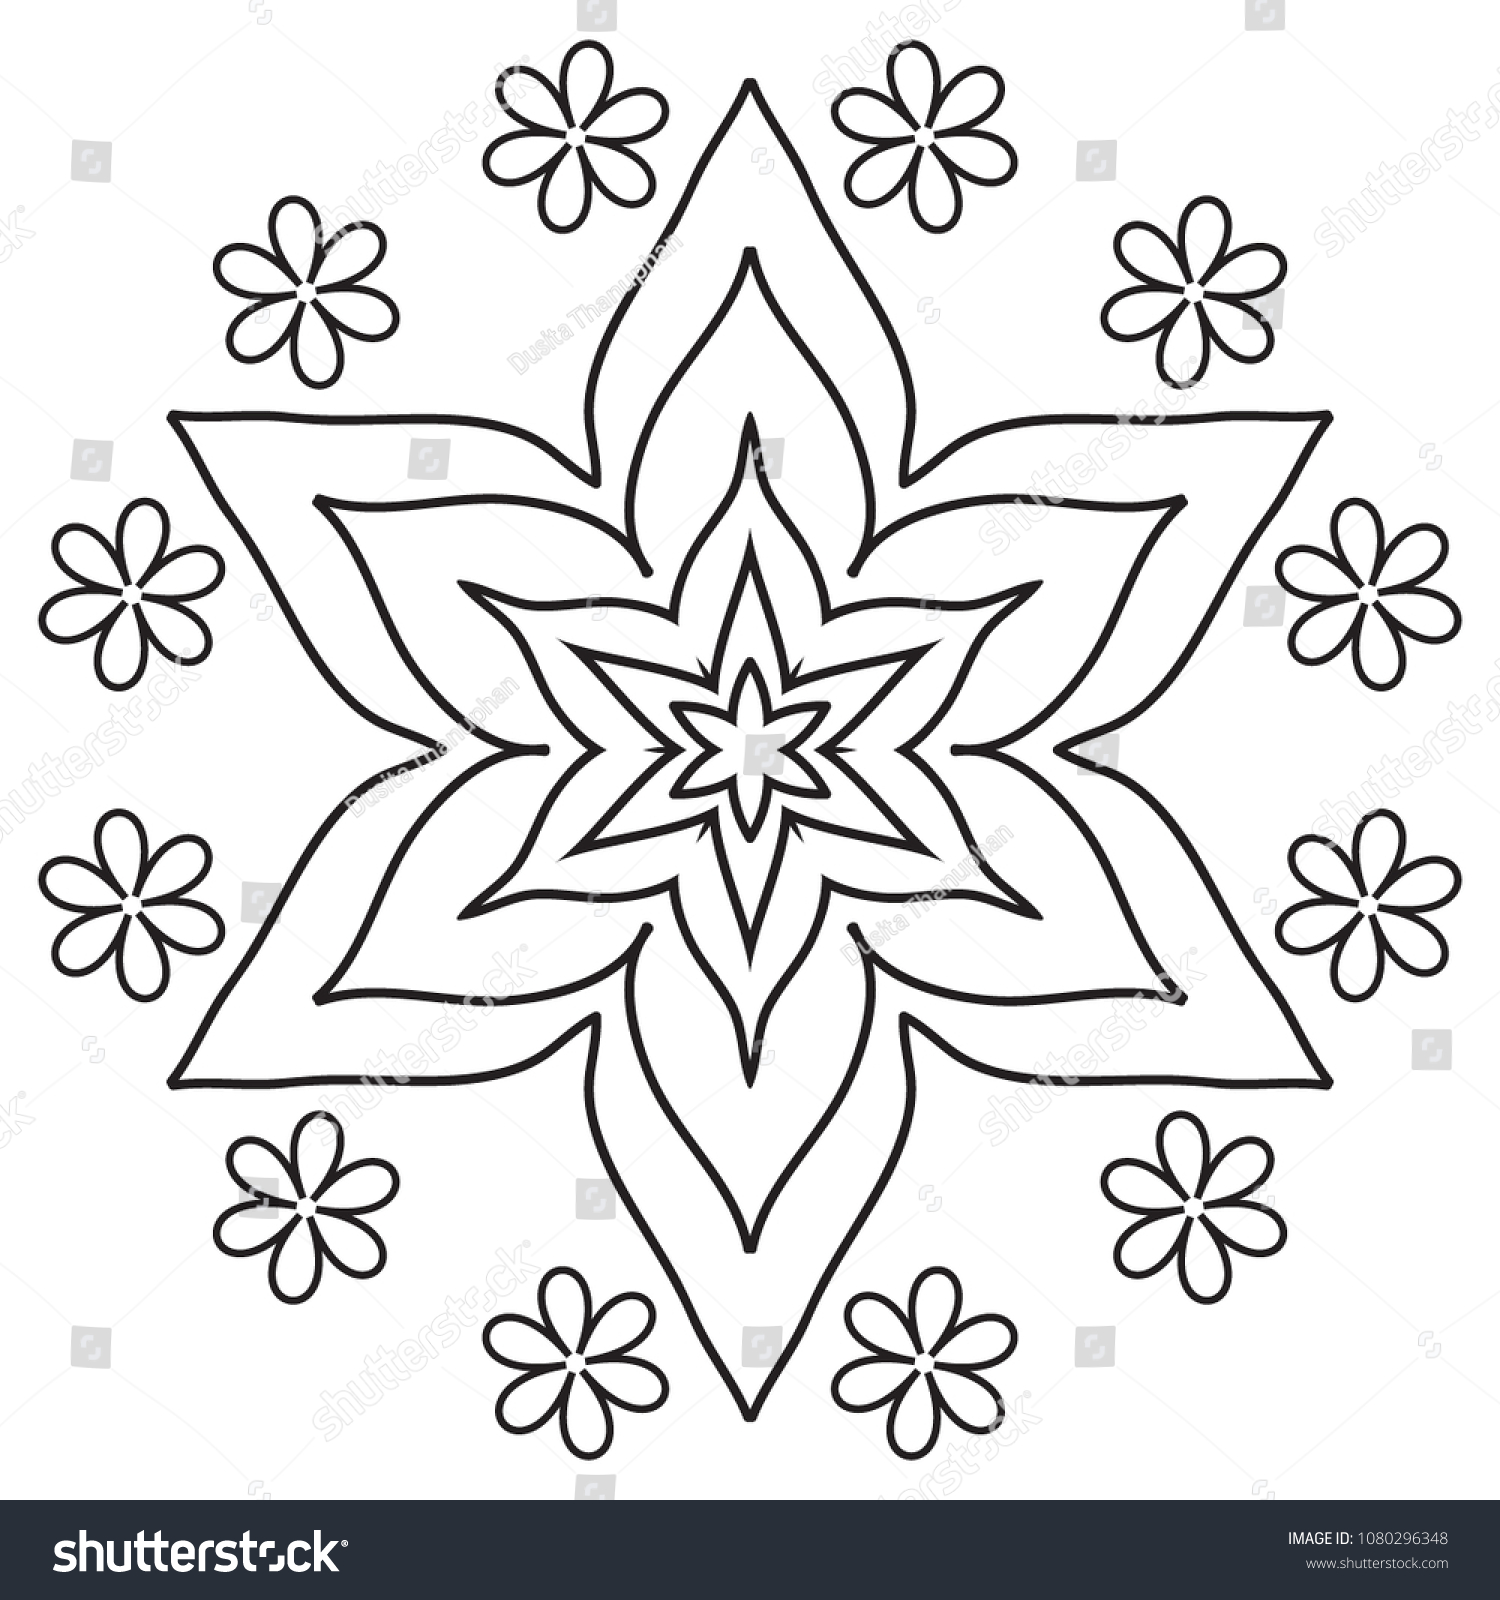 Awesome printable coloring pages for adults with dementia | Flower ... | 1600x1500